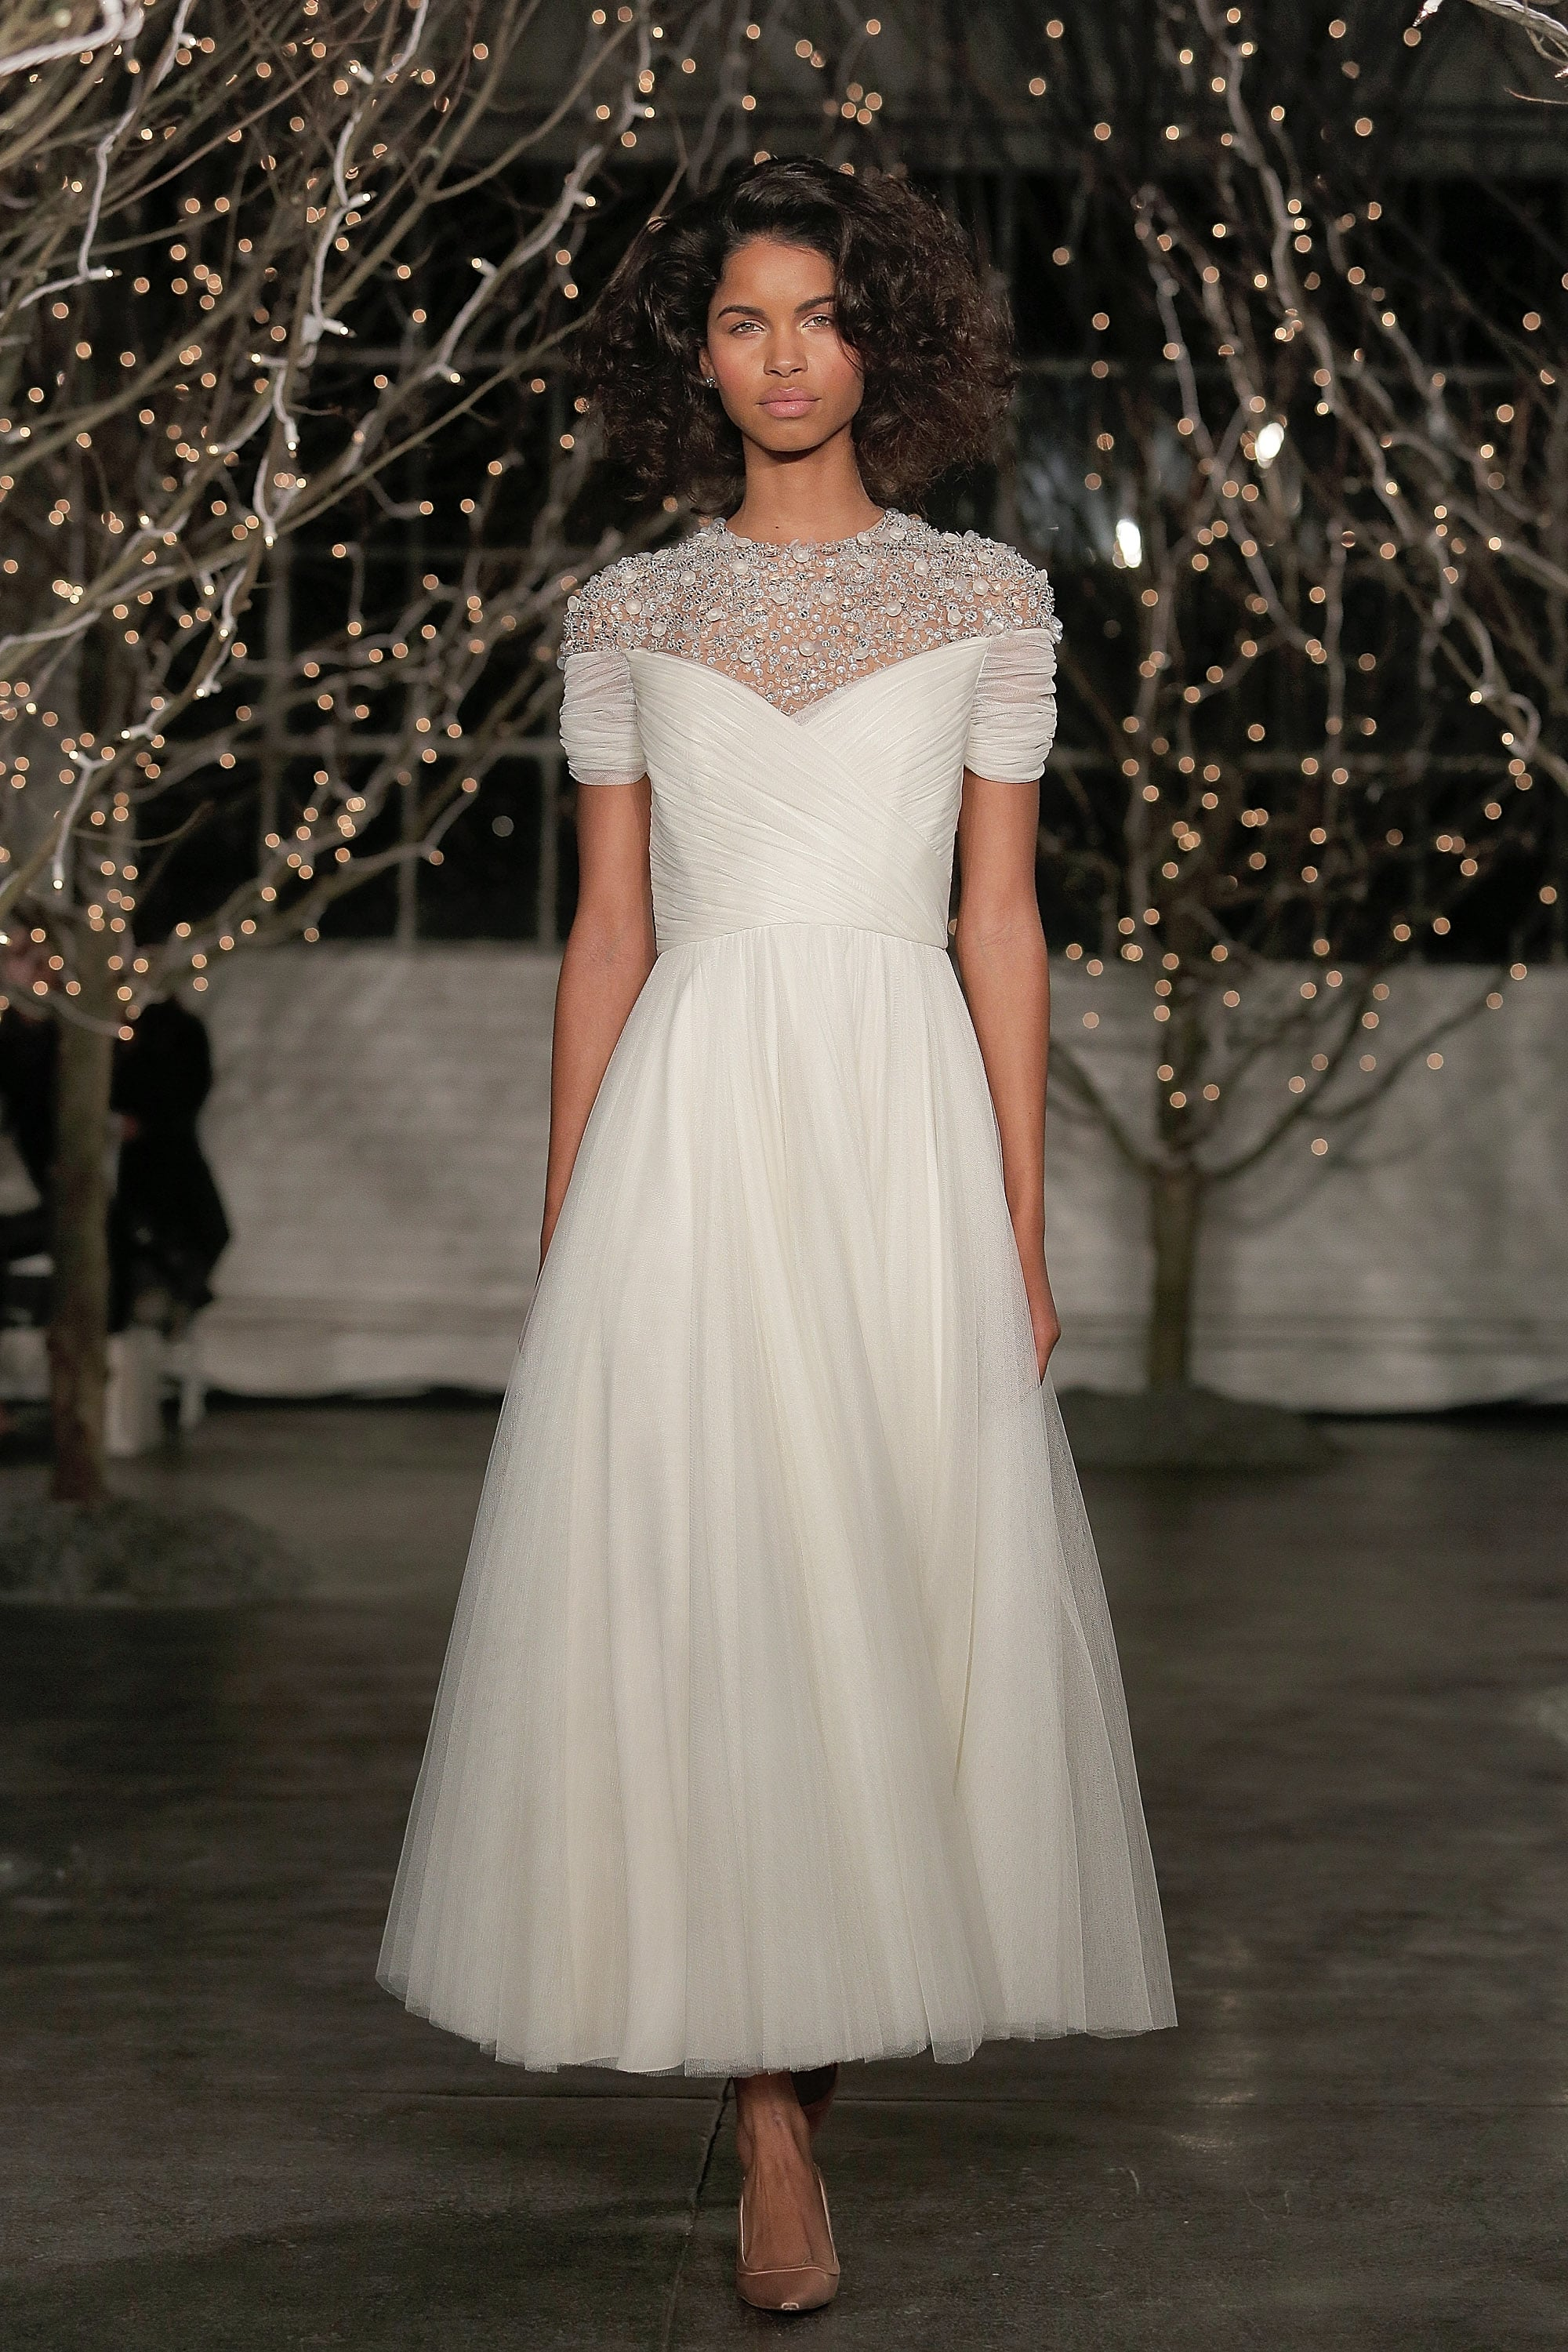 Of course, if she were to change it up, we could easily see the lovely Pippa in something sweet, like this gown from the Jenny Packham Fall 2014 collection.